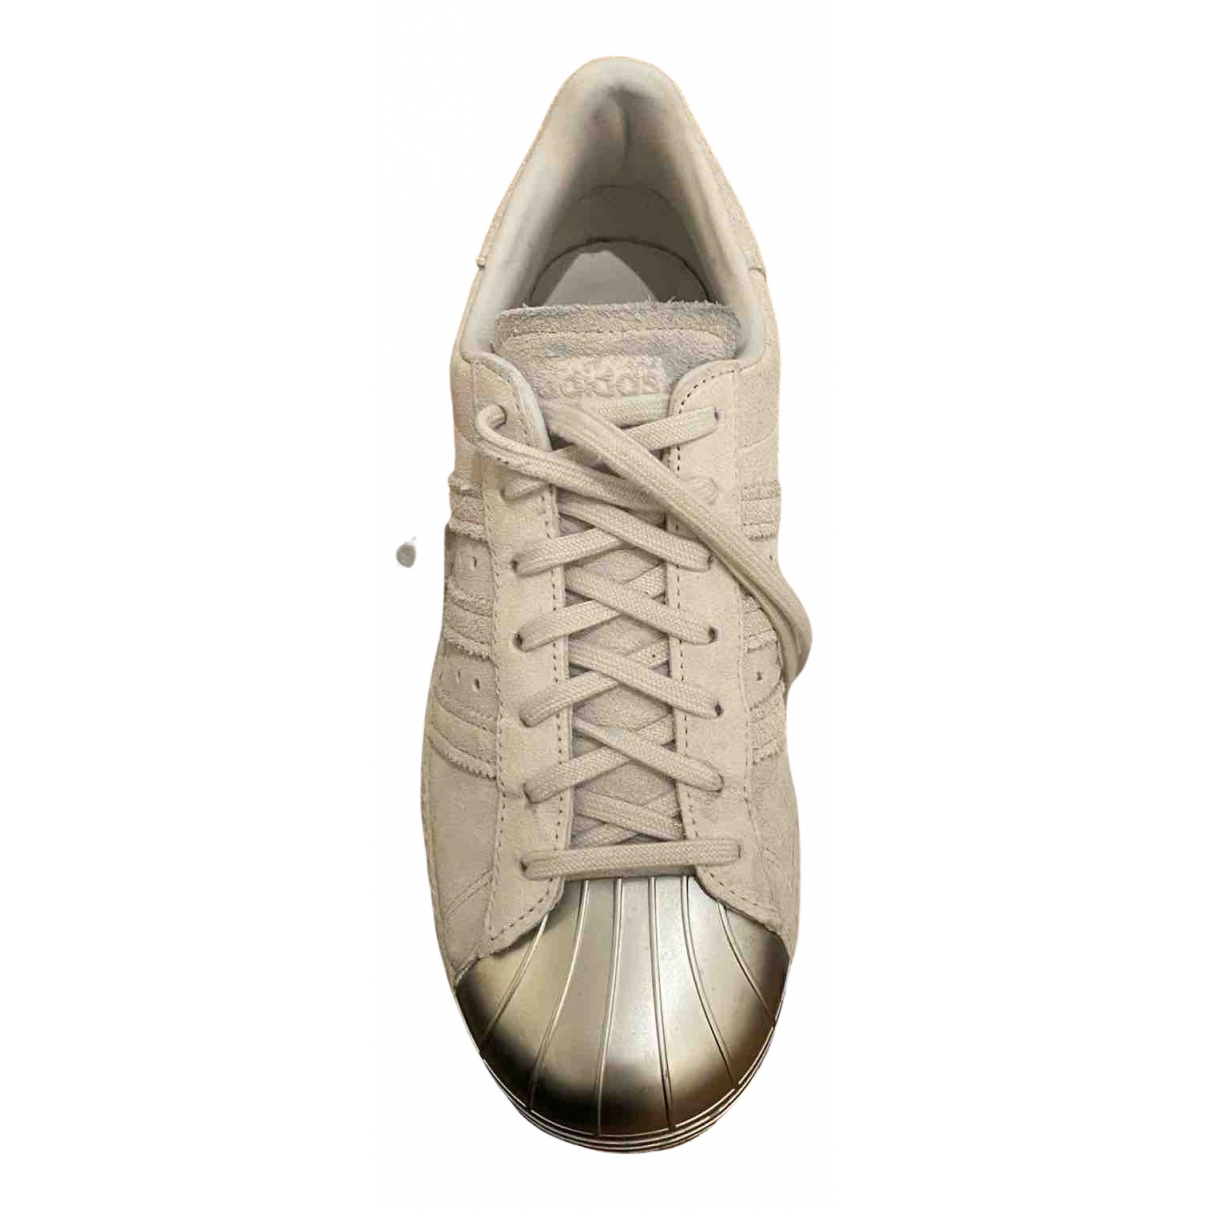 Adidas Superstar Grey Suede Trainers for Women 40 IT